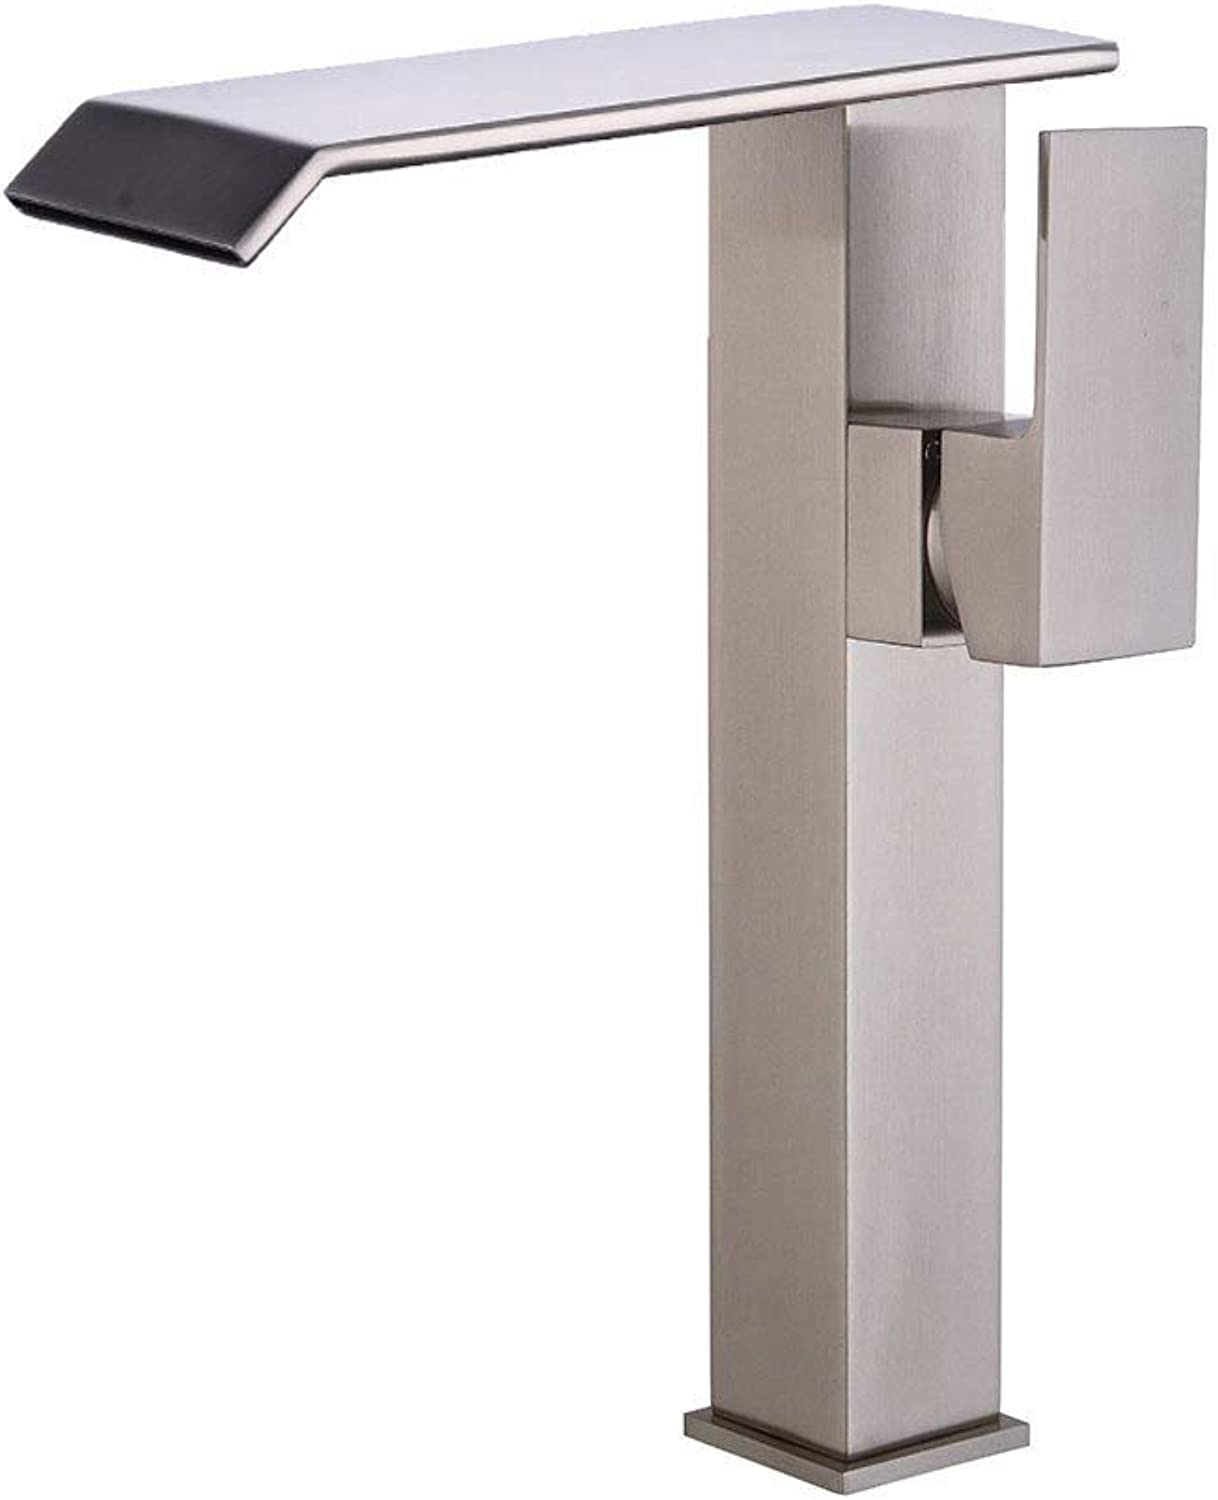 Ywqwdae Taps Kitchen Taps Basin Faucets Cold and Hot Water Mixer Bathroom Mixer Basin Mixer Tap Waterfall Hot and Cold Retro High for Kitchen Or Bathroom Taps (color   High Section)